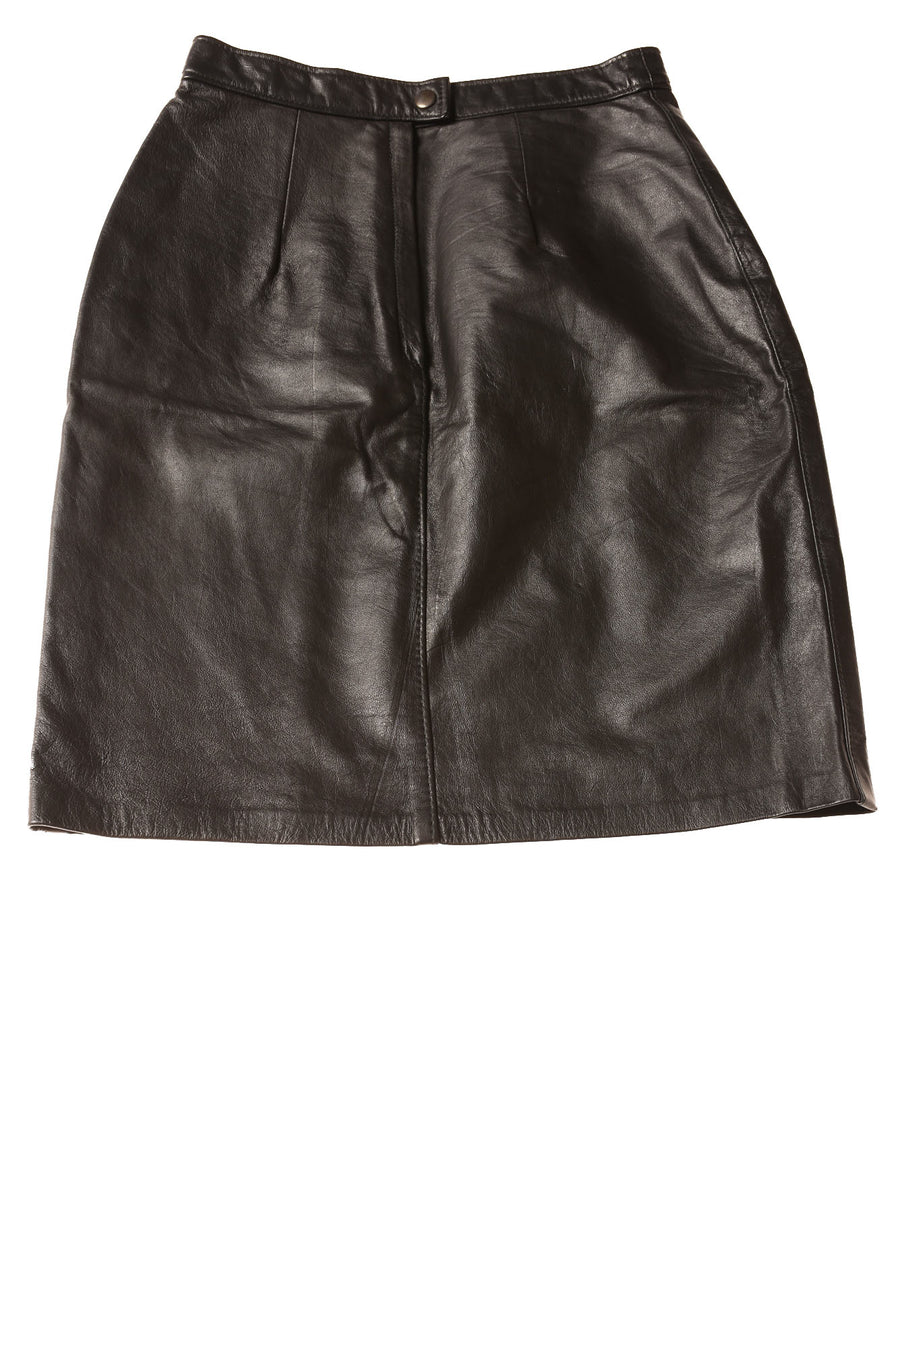 NEW Life Comfort Women's Skirt 7/8 Black